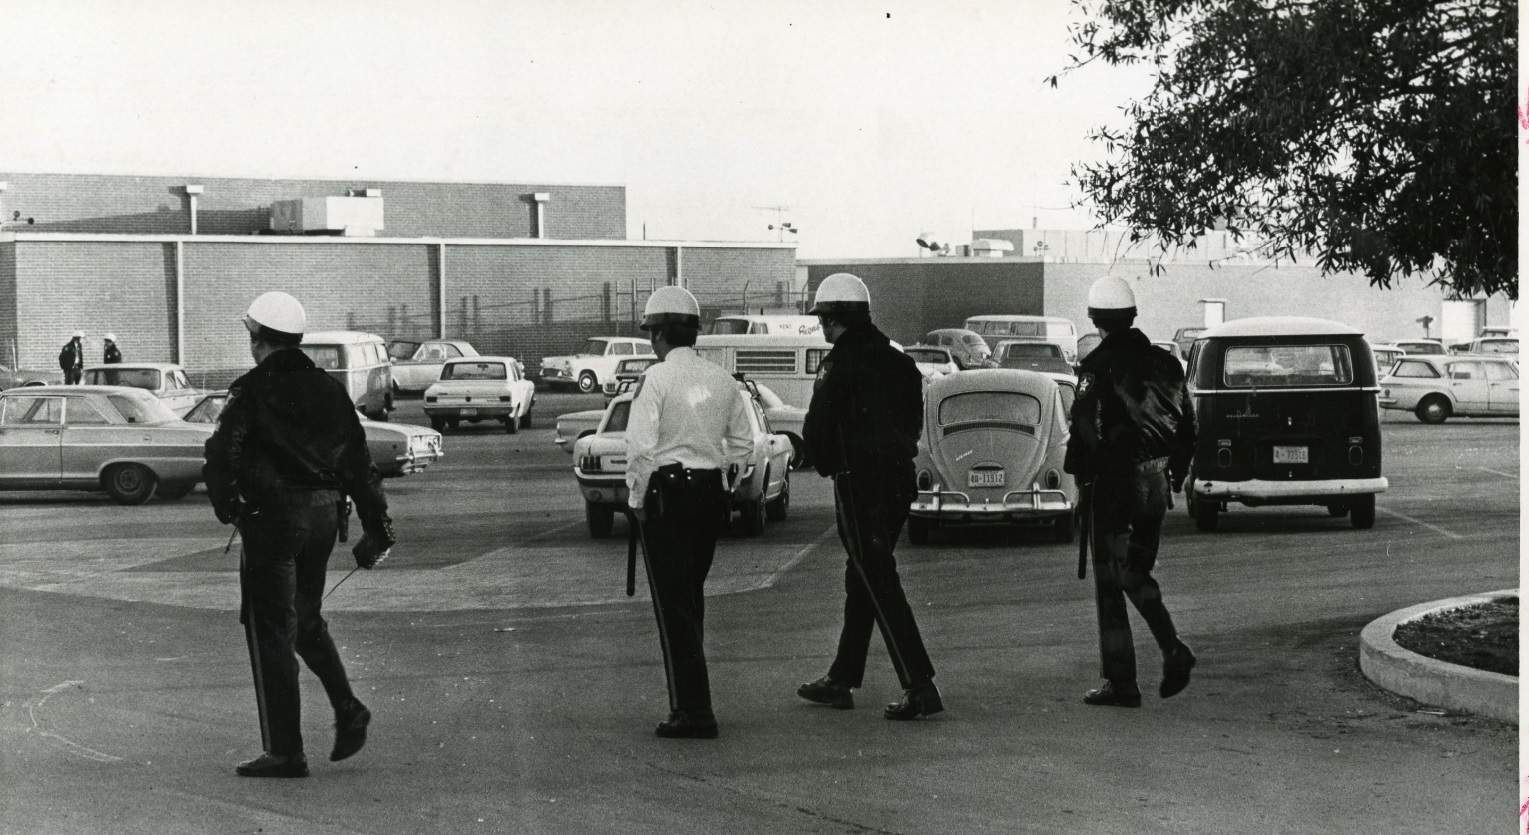 An old black and white photo of police officers with helmets walking on to a school parking lot.